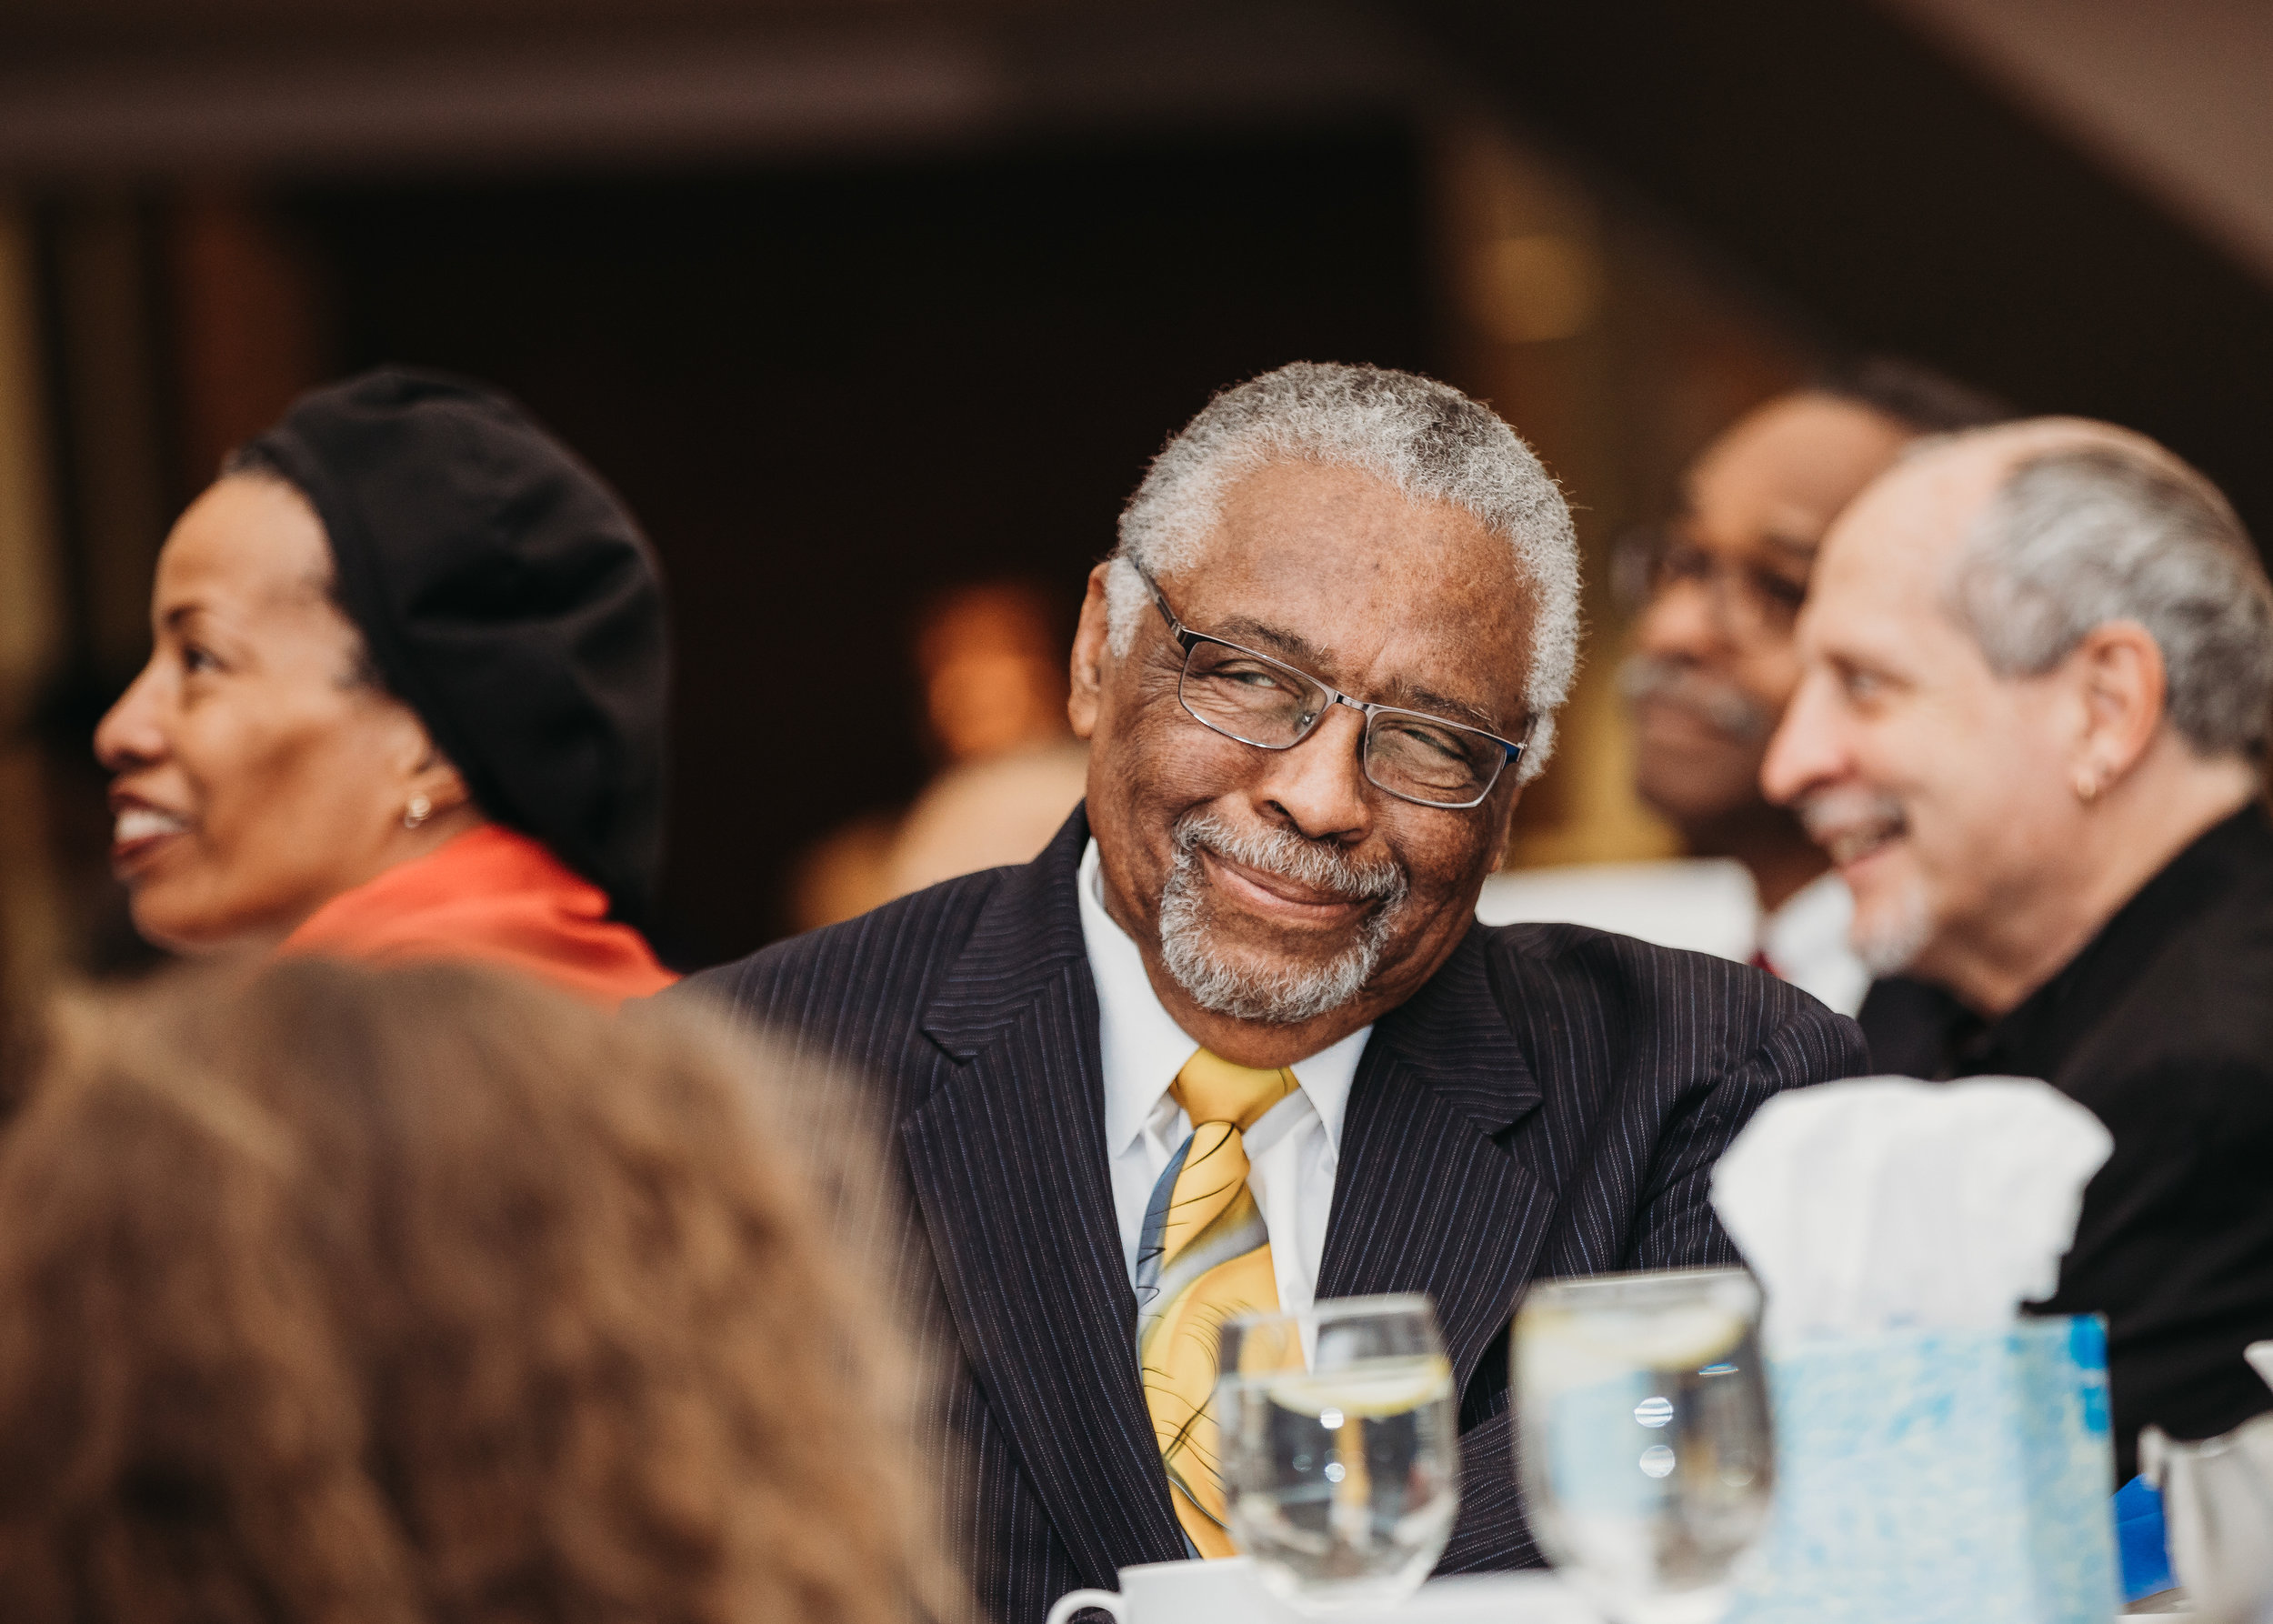 Earl Avery at the MLK luncheon where he was presented with an award for his dedication to the institution. Boston corporate and higher education photography.